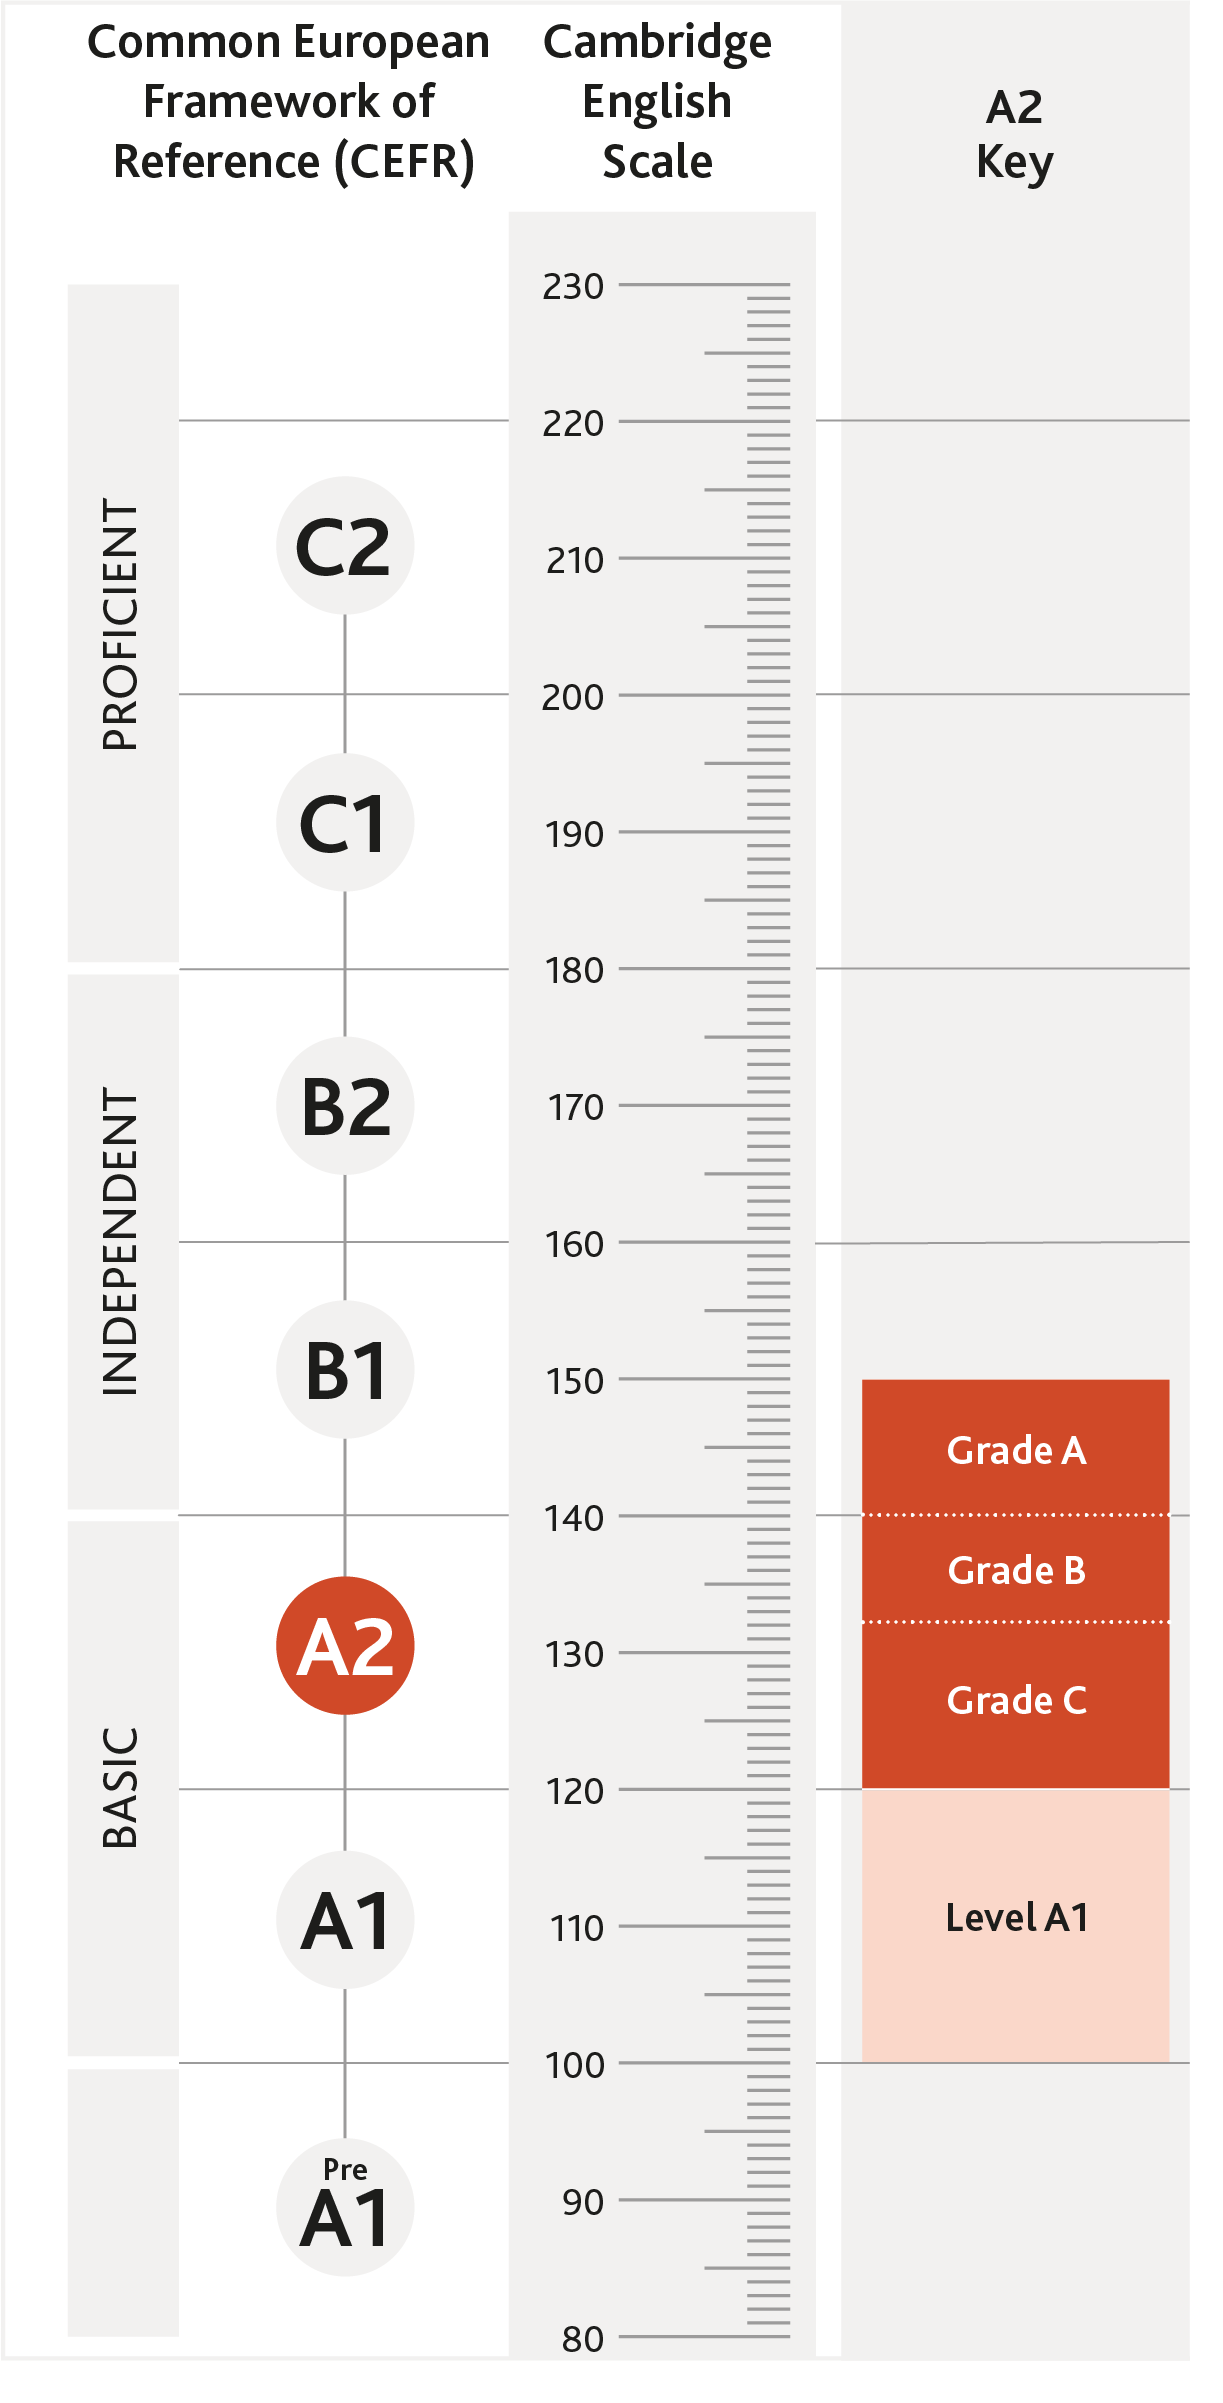 Diagram of where A2 Key is aligned on the CEFR and the Cambridge English Scale